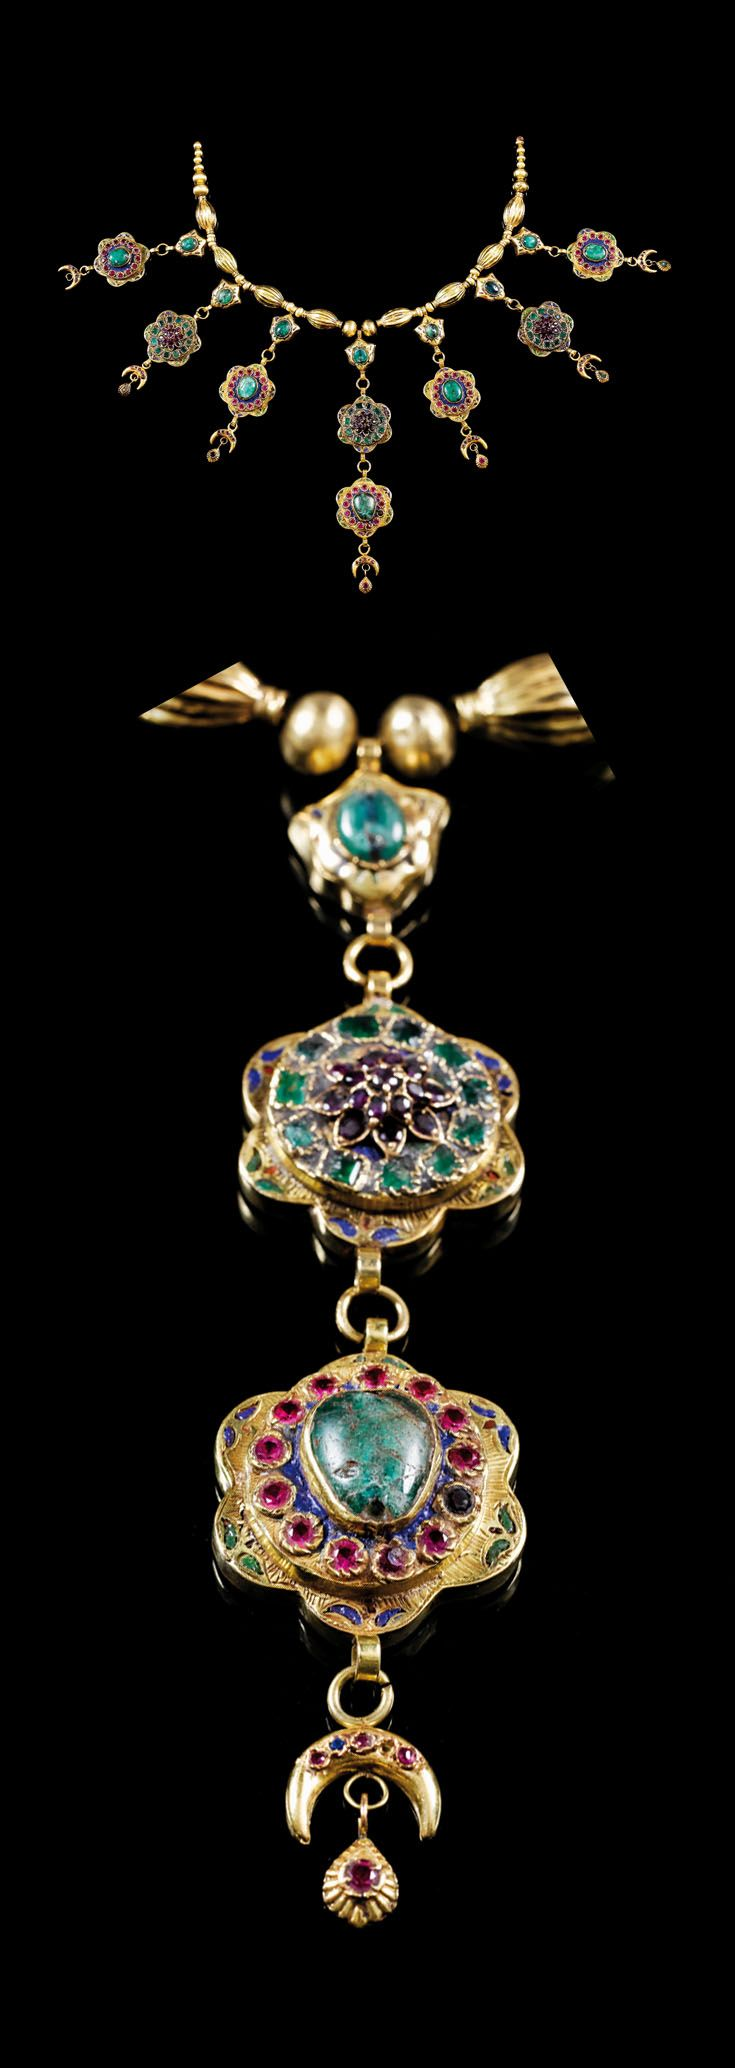 Morocco ~ Fez | 'Lebba' ~ necklace; gold set with emeralds, rubies and other precious stones. Emamelled in floral motifs. | ca. 18th century | 36'750€ ~ sold (Mar '11)